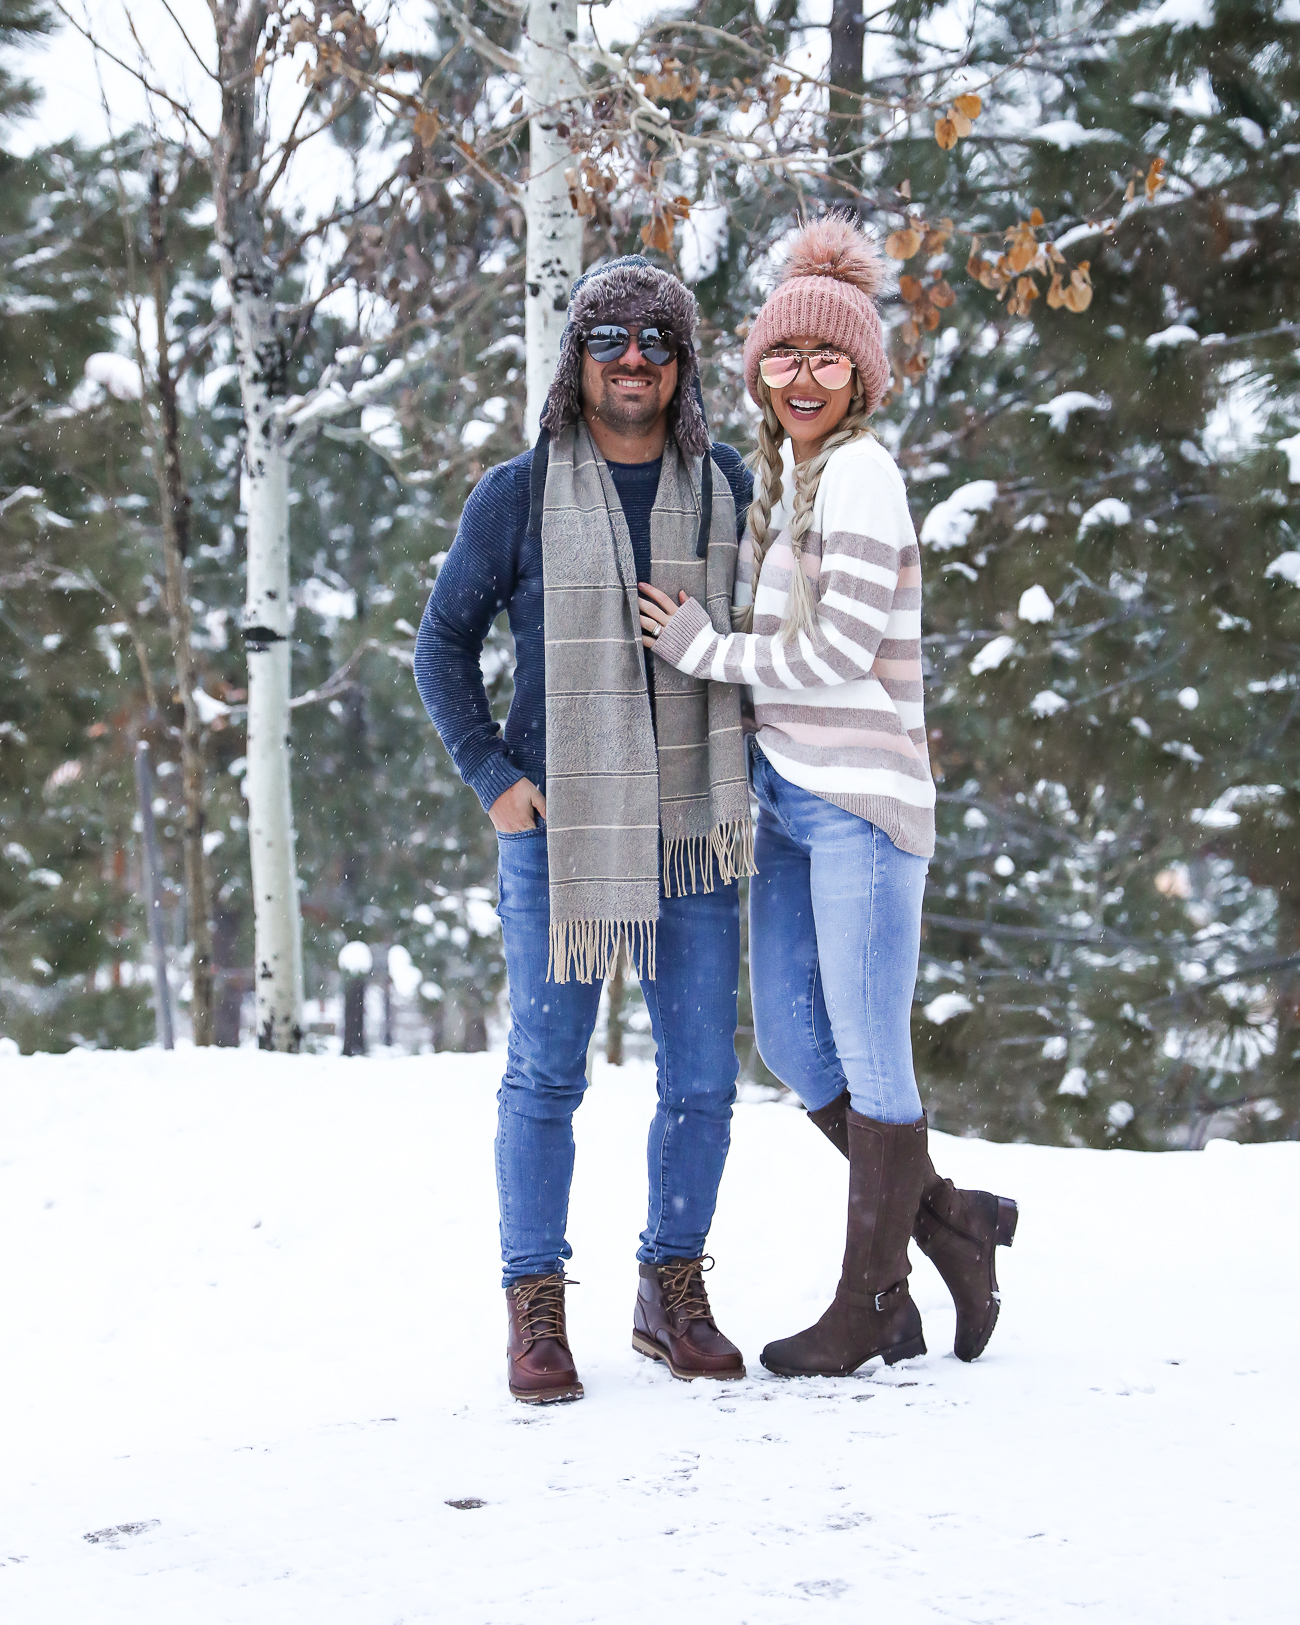 Zappos Rockport Christy Boots His & hers Couple winter outfit ideas Lake Tahoe NorthStar Resort Laura Beverlin -19